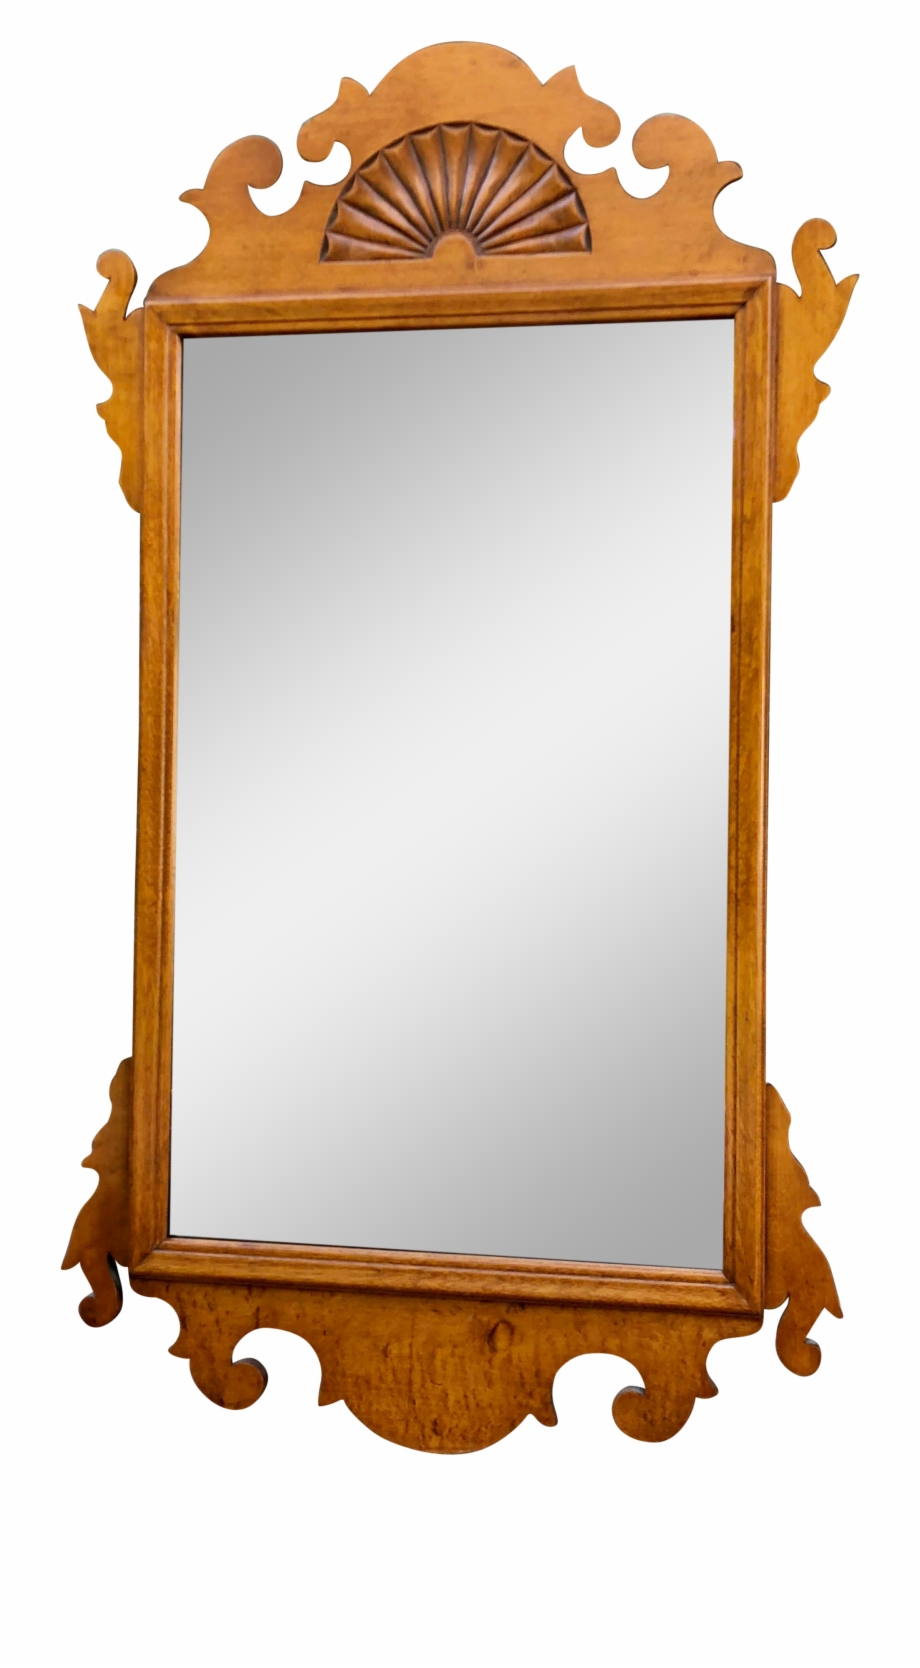 Shaving mirror clipart image library Makeup Clipart Rectangle Mirror {#3638926} - Pngtube image library